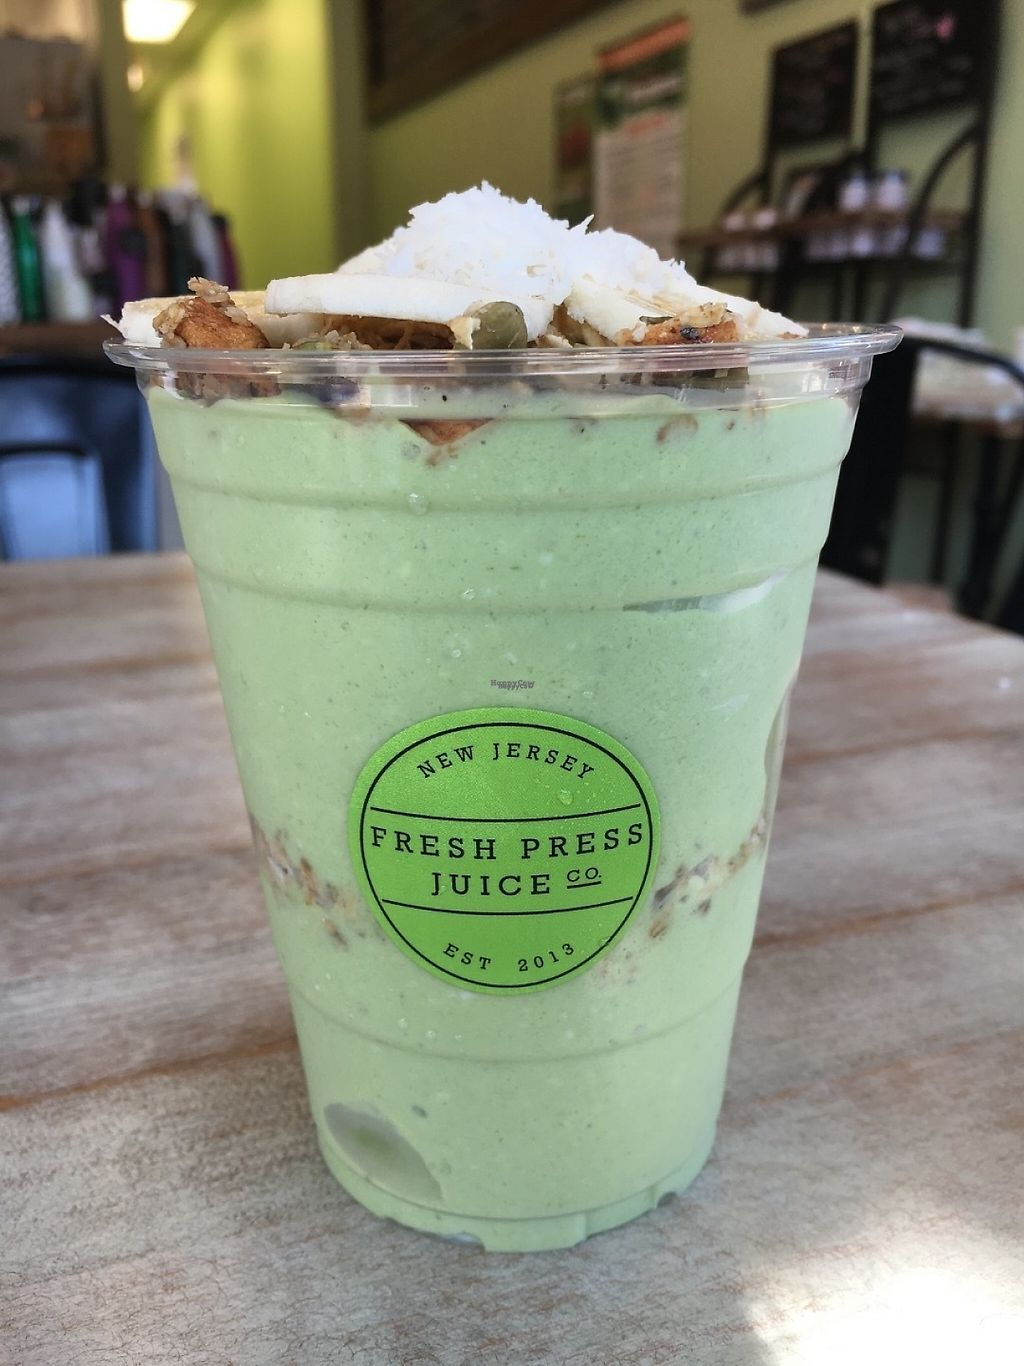 """Photo of Fresh Press Juice Co  by <a href=""""/members/profile/Mmille3258%40aol.com"""">Mmille3258@aol.com</a> <br/>Just loved the coconut bowl & they added some spinach in there too.  Owners are really friendly & knowledgable.   <br/> January 27, 2017  - <a href='/contact/abuse/image/53057/218008'>Report</a>"""